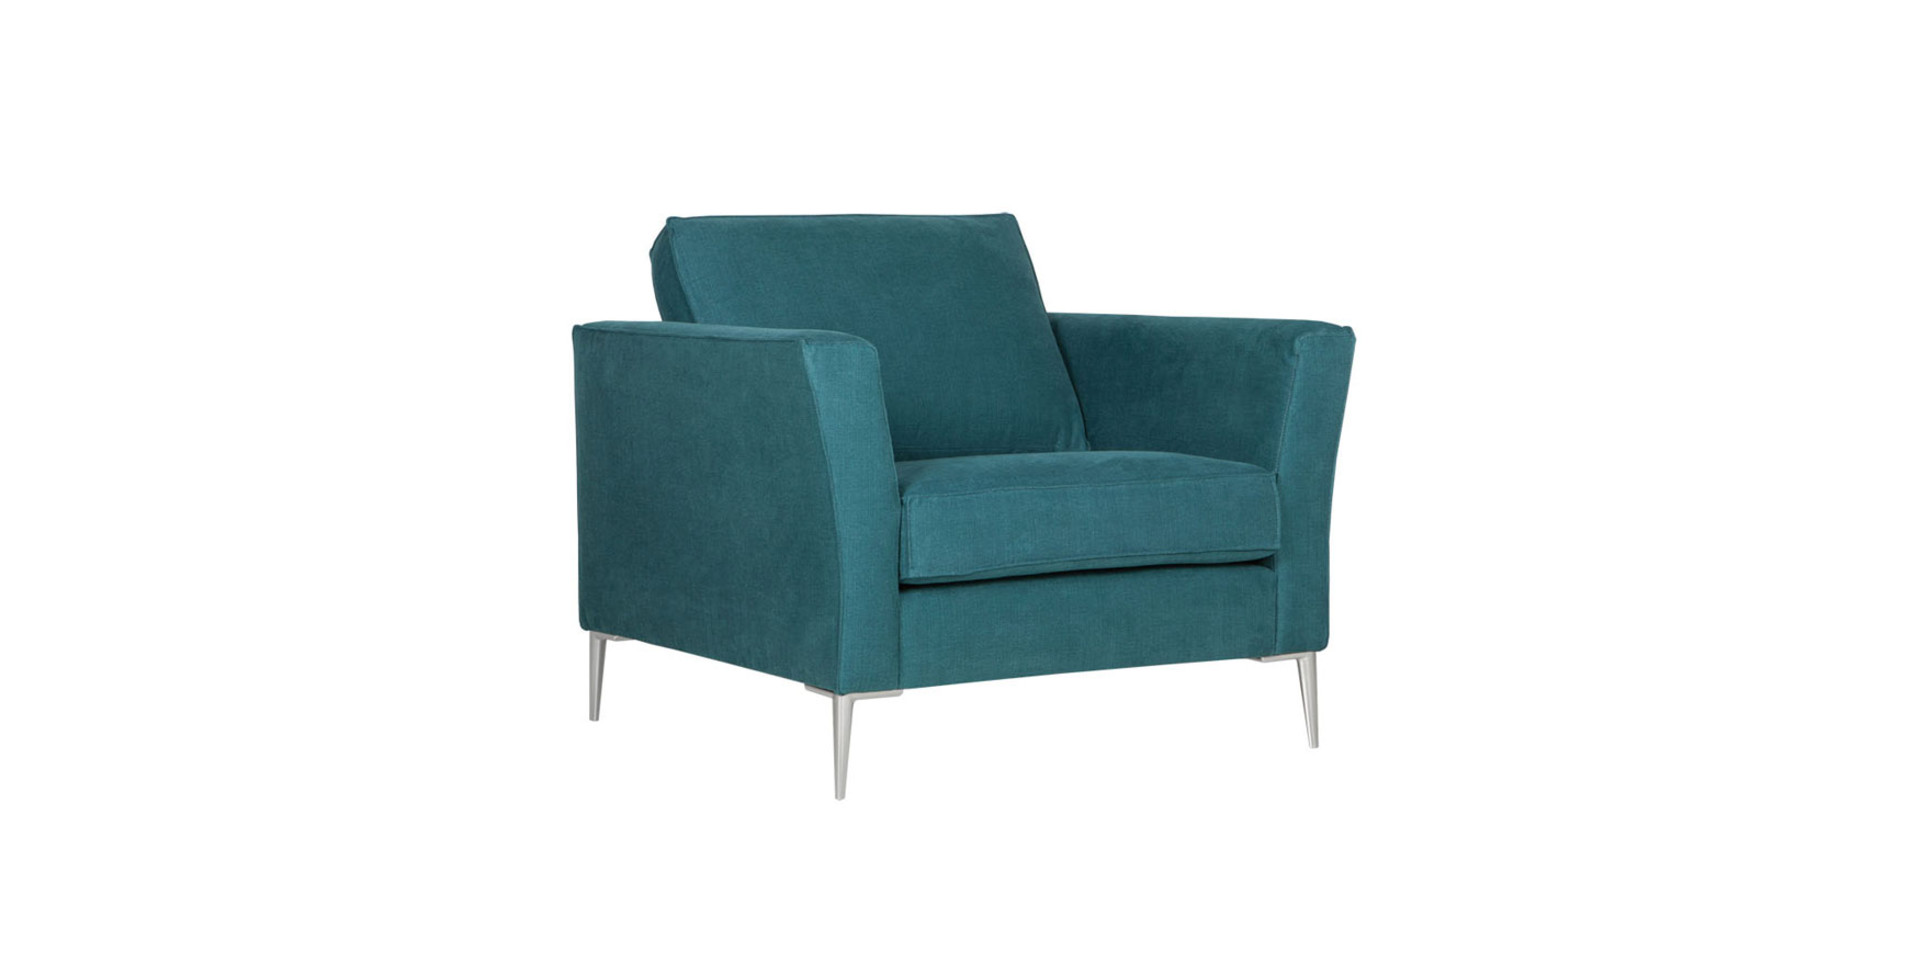 sits-caprice-fauteuil-armchair_caleido1551_turquoise_2